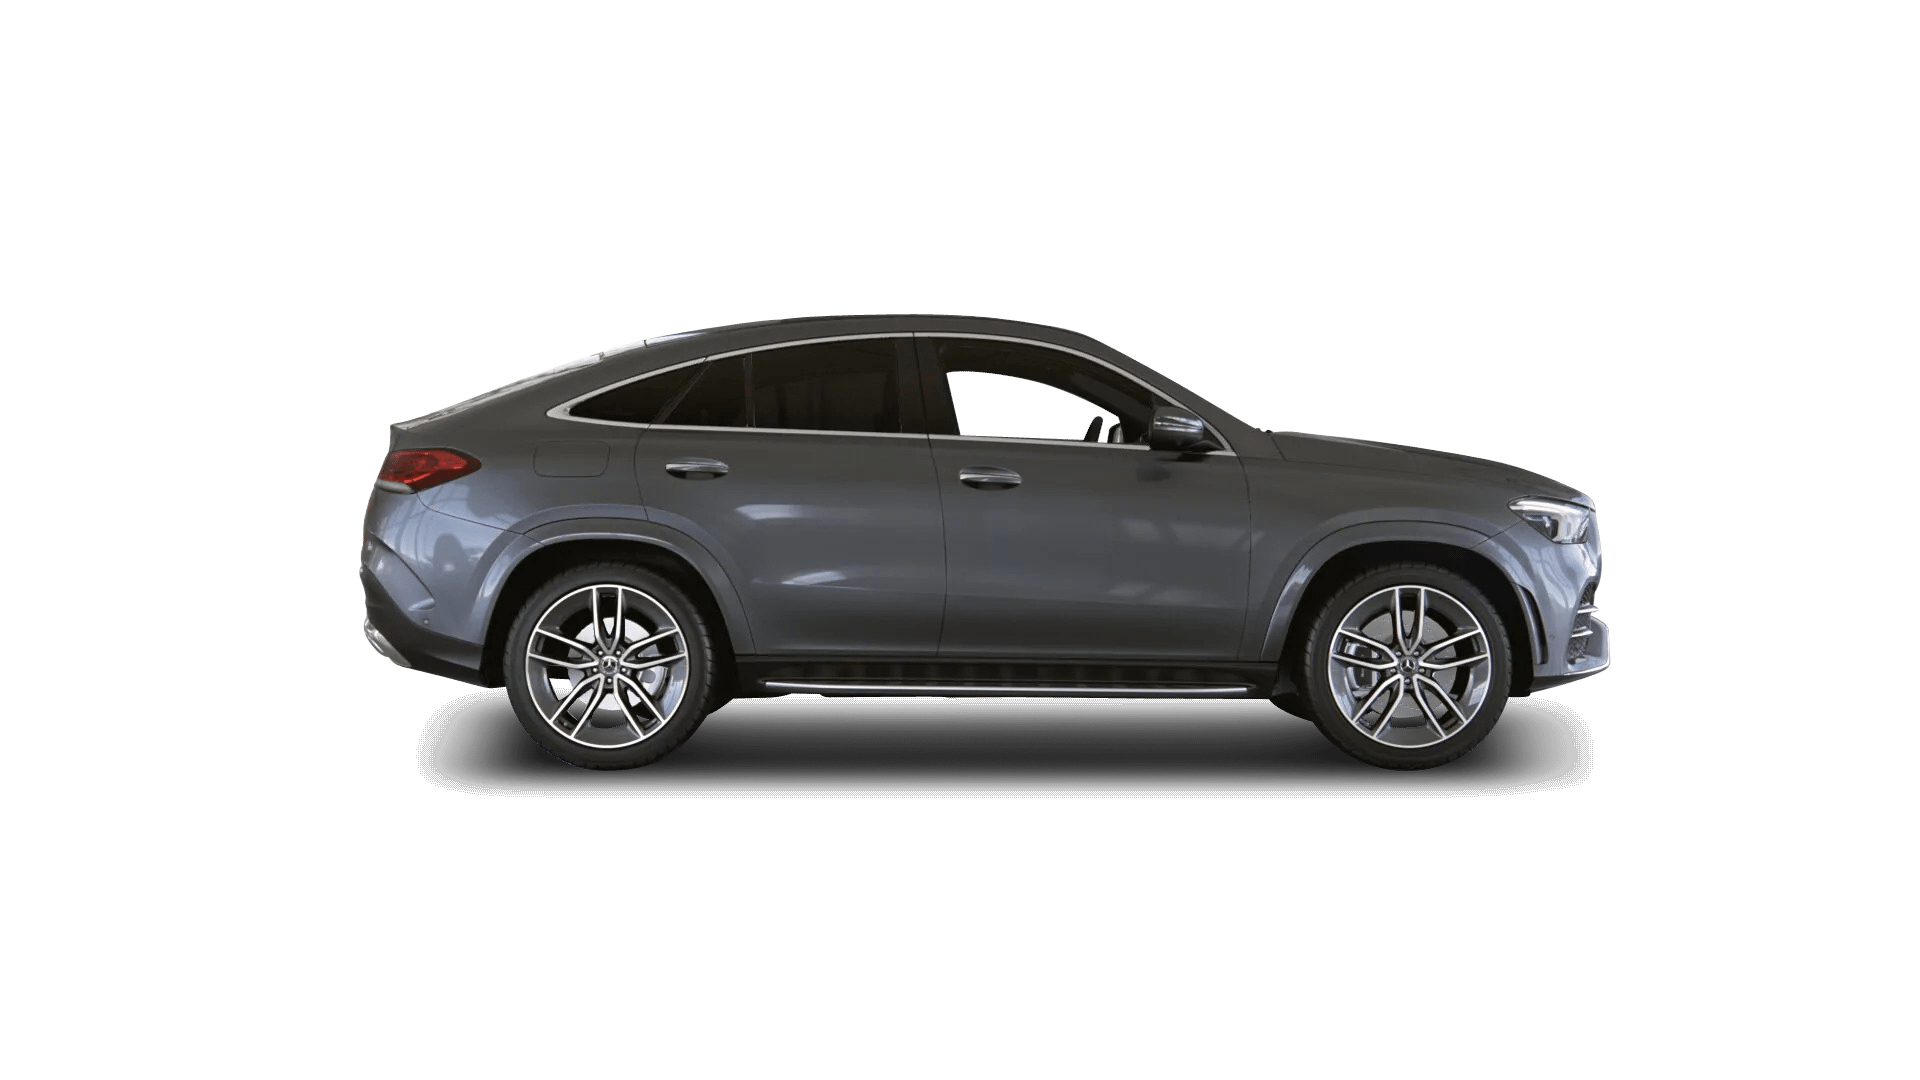 https://bluesky-cogcms.cdn.imgeng.in/media/34886/gle-coupe-amg-line-premium-plus.png